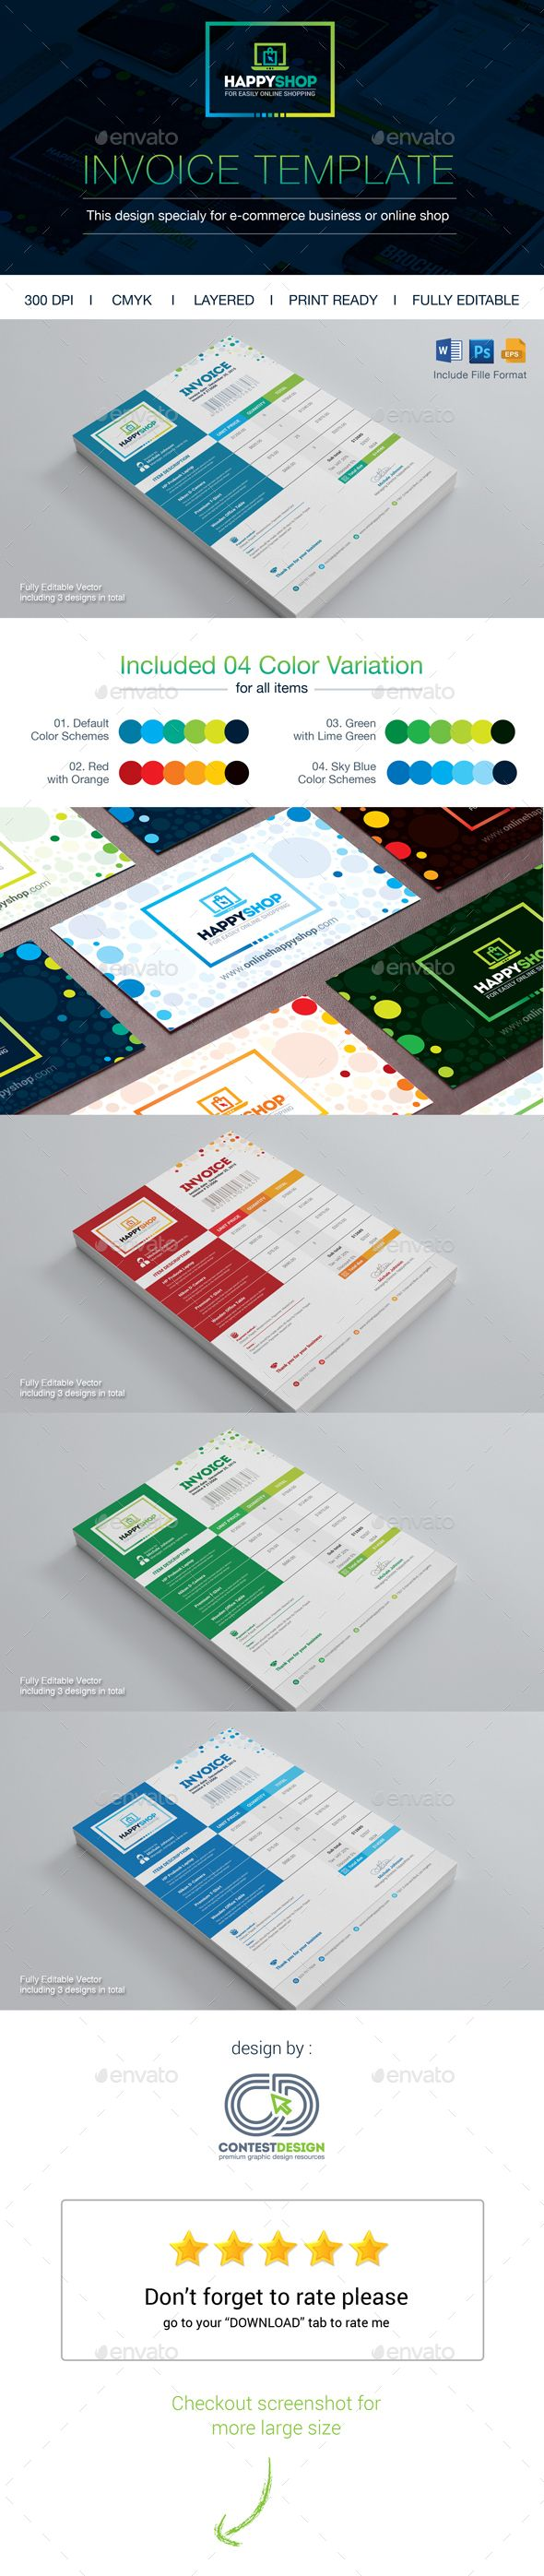 free proposal template%0A HappyShop   Invoice Template by ContestDesign This is the Invoice template  is specially for ECommerce Business or Online Shop  Creative and clean  Invoice